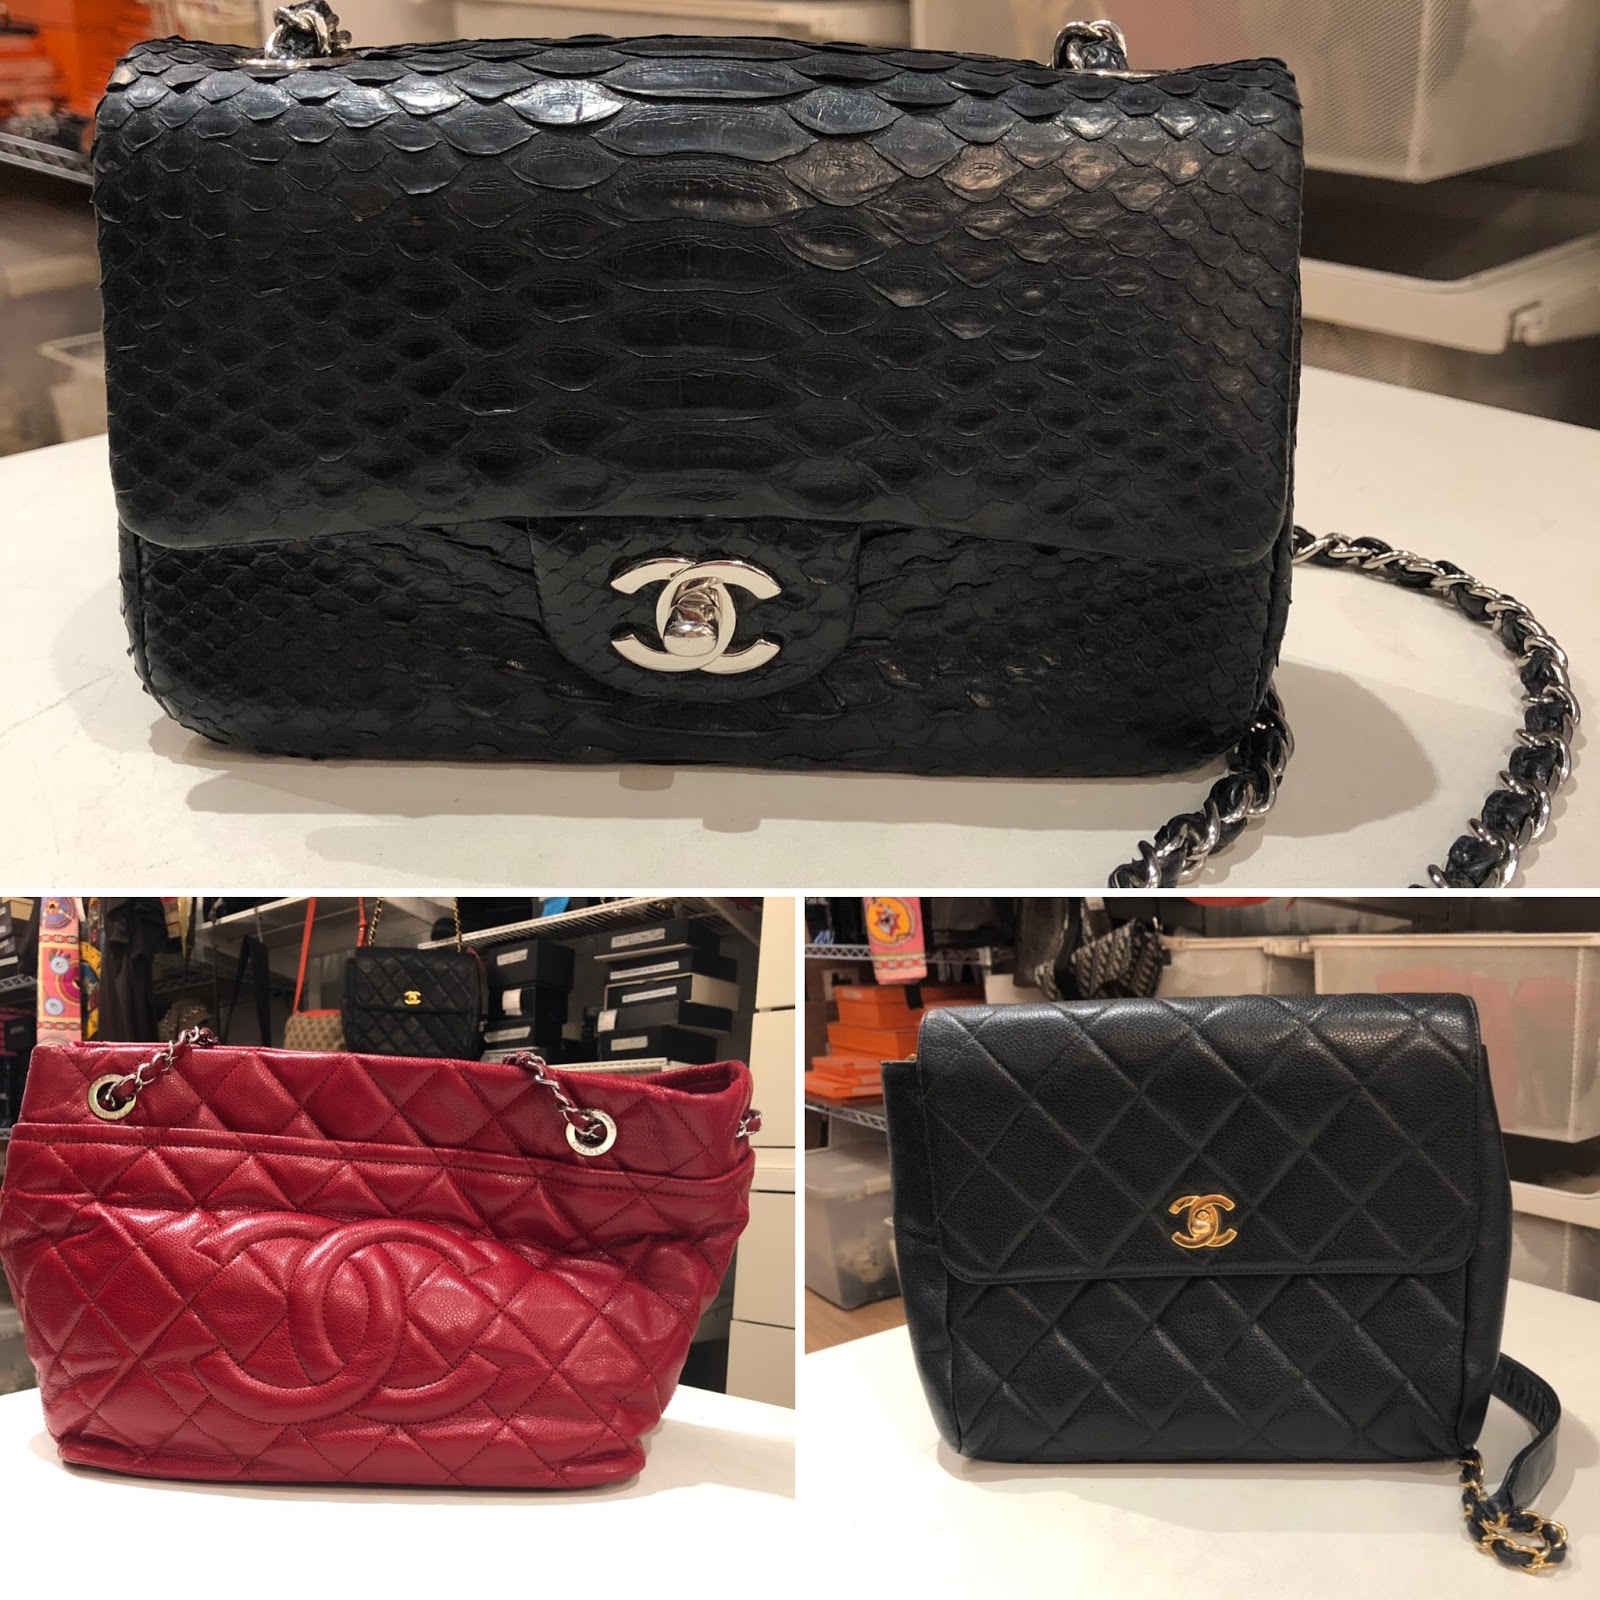 953738dd6abf Love this red tote (sold) & the Chanel Vtg Black Caviar Leather Quilted ·  Crossbody Flap Bag too!